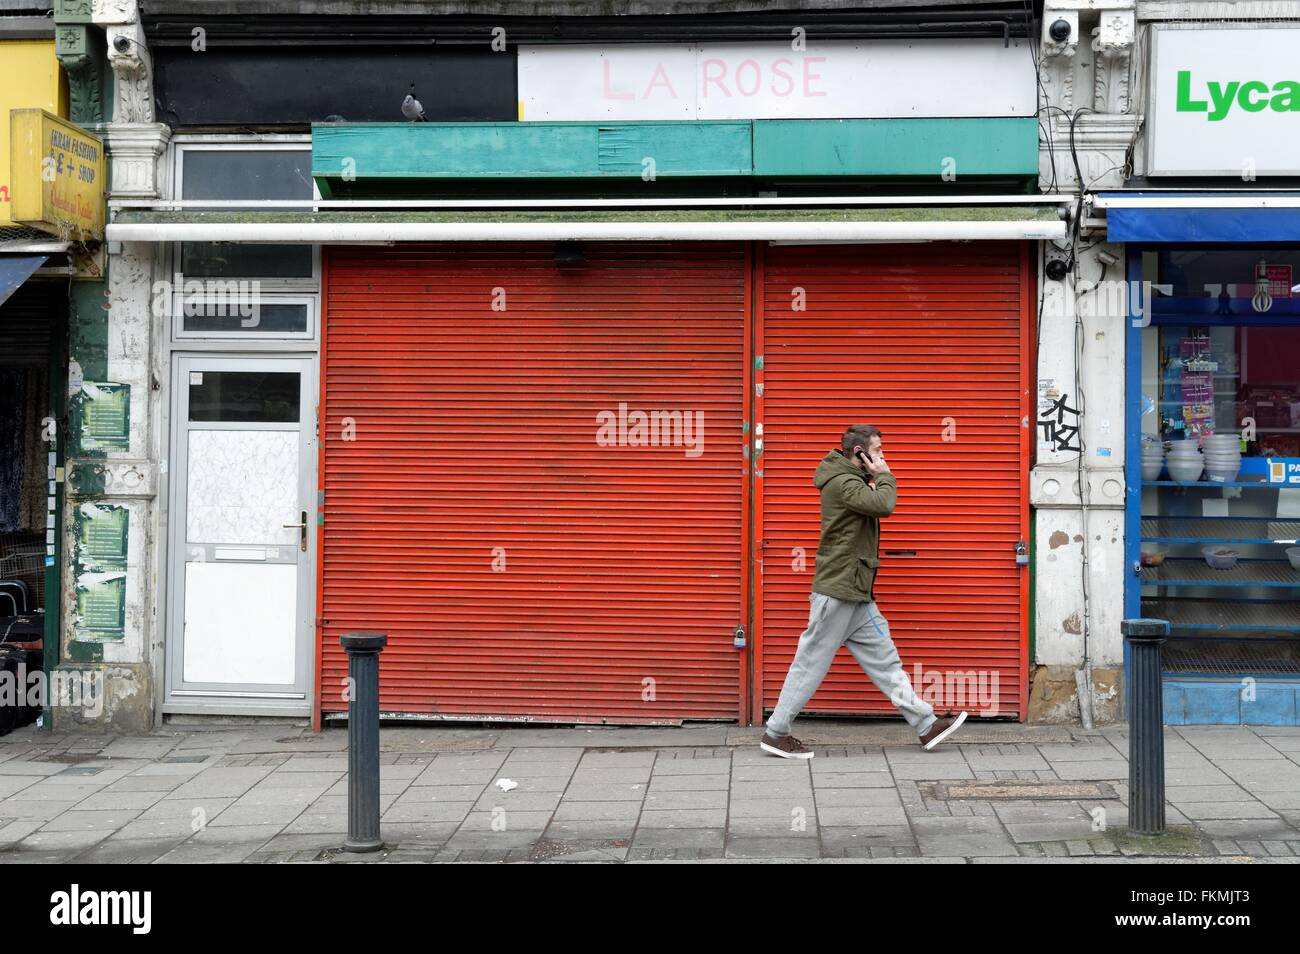 Man on phone walking by a closed shop in Harlesden London UK - Stock Image